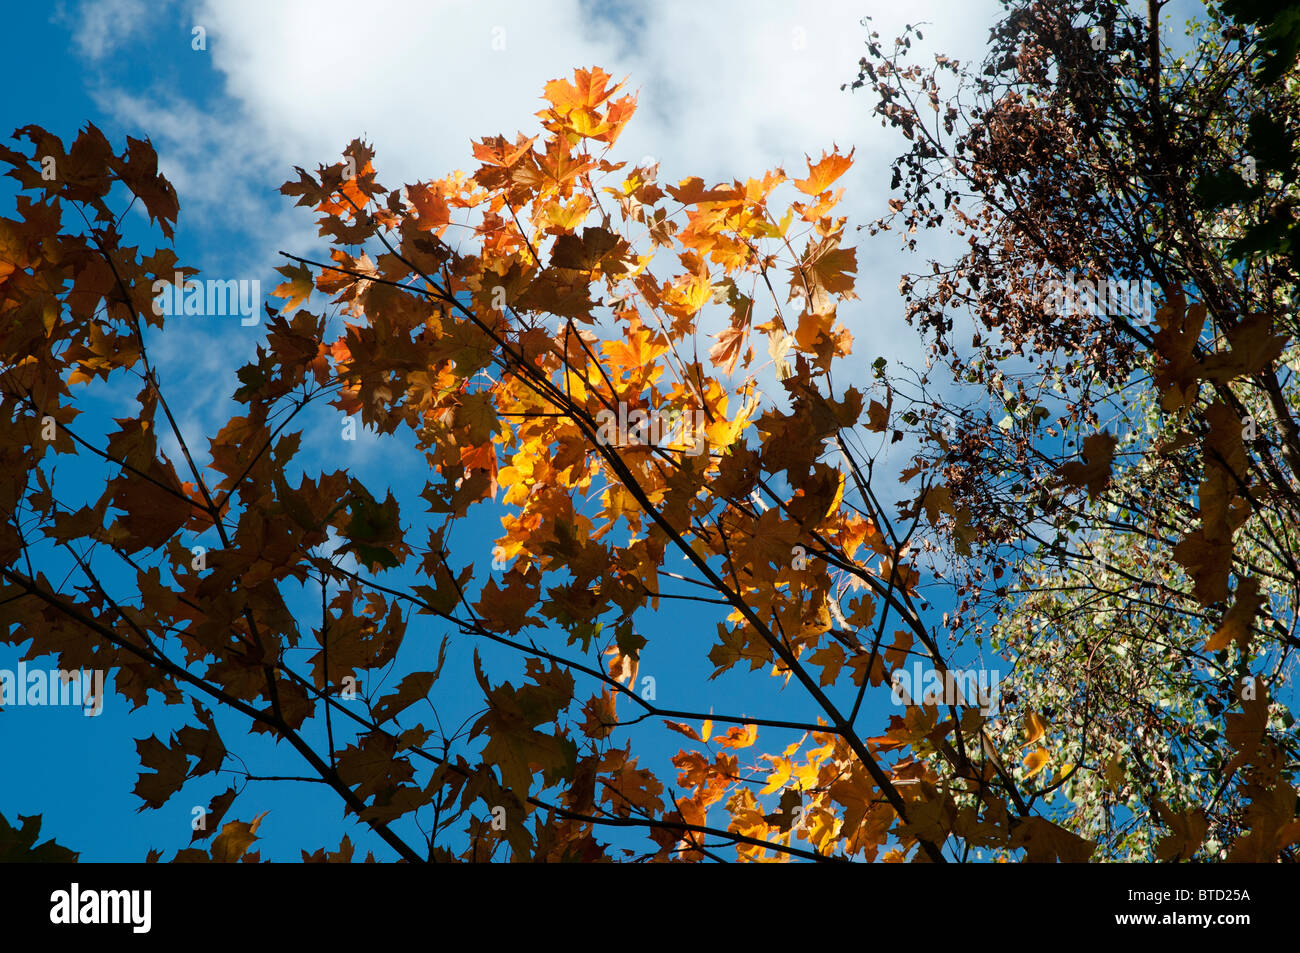 changing autumn leaves against bright blue sky with highlighted yellow leaves from the sun - Stock Image